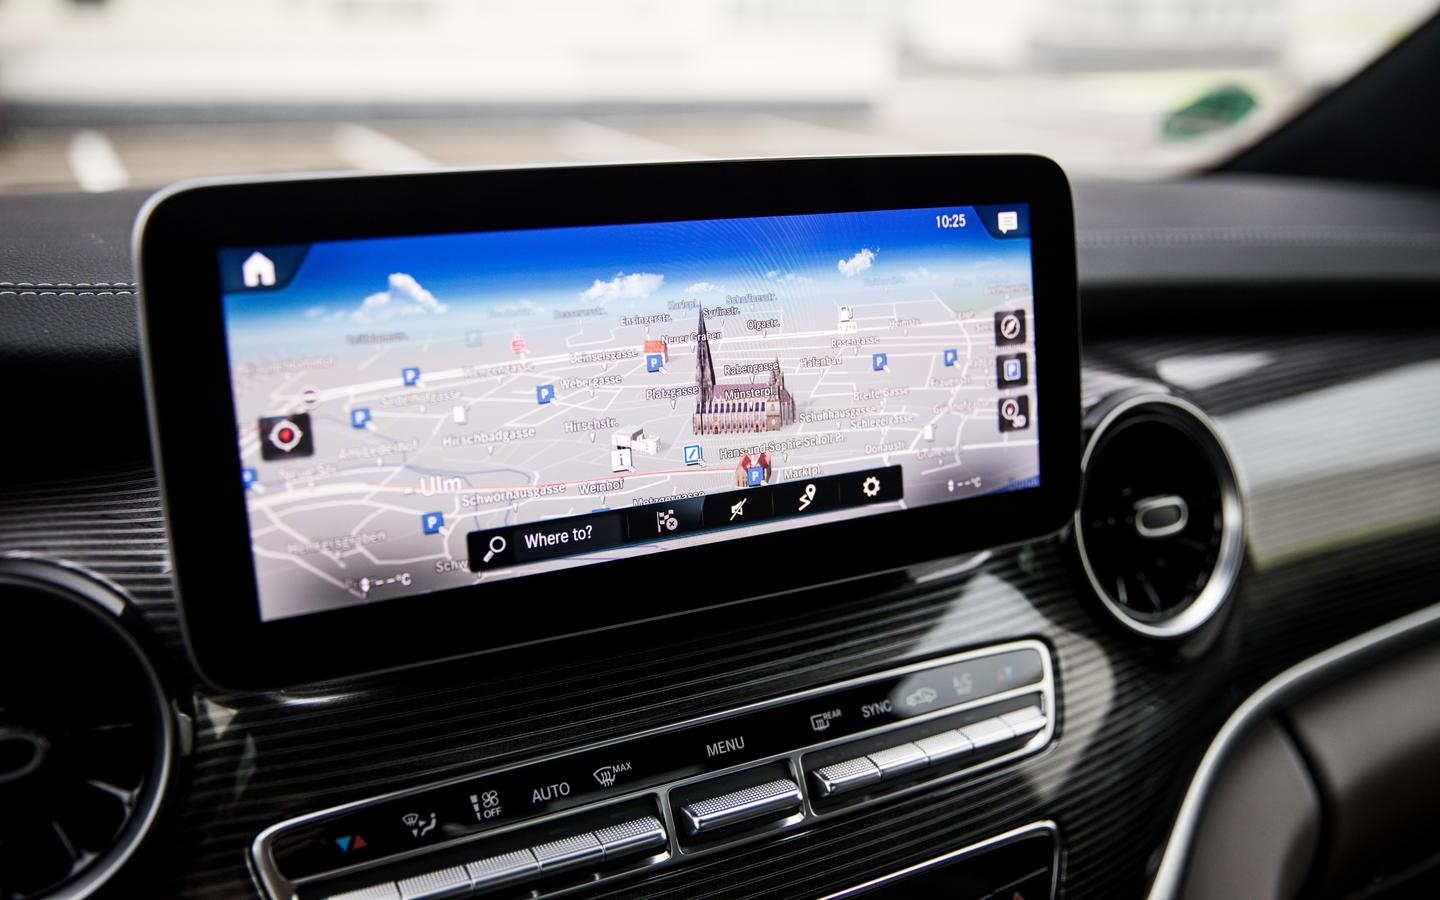 The MBUX infotainment system is now available in the V-Class van and Marco Polo and Marco Polo Horizon camper vans, offering voice control of certain vehicle and infotainment settings and control of camper van features